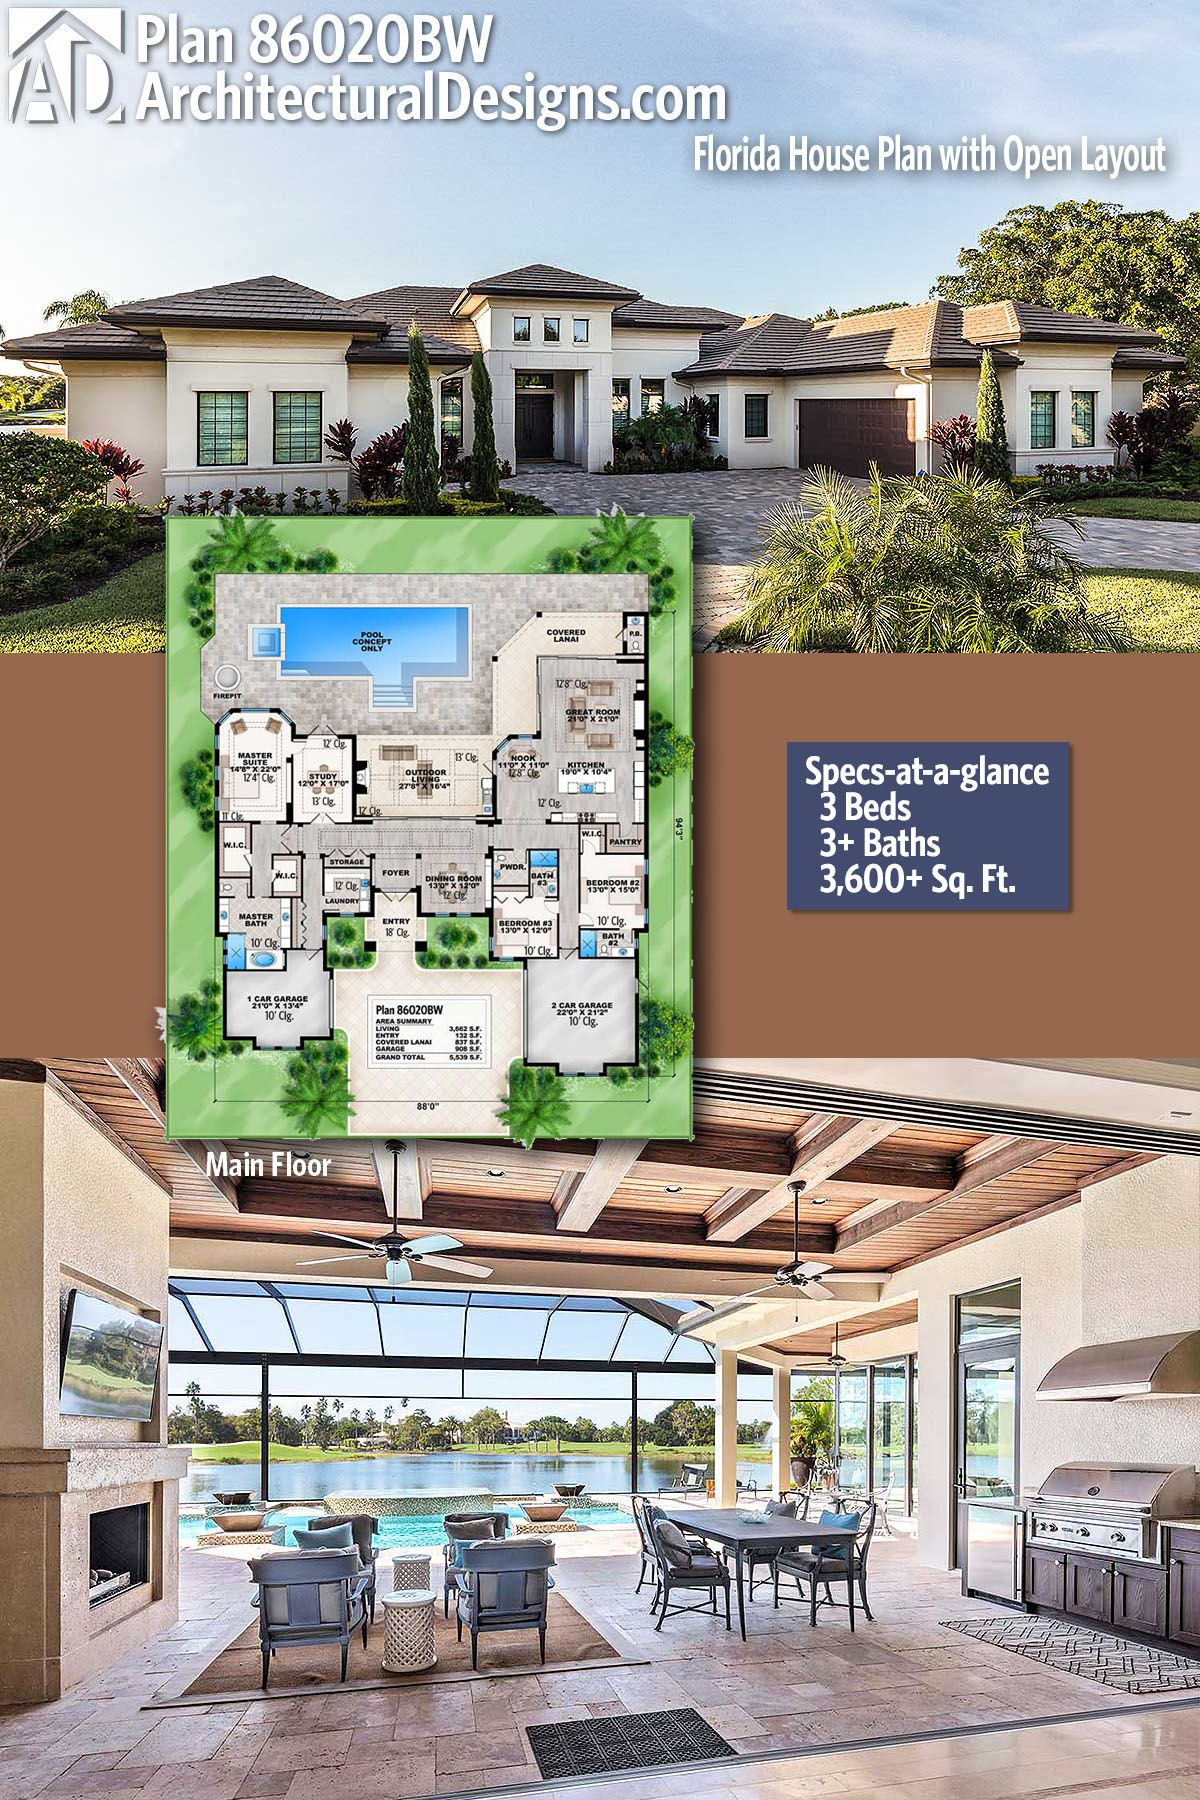 Architectural Designs House Plan 86020BW 3